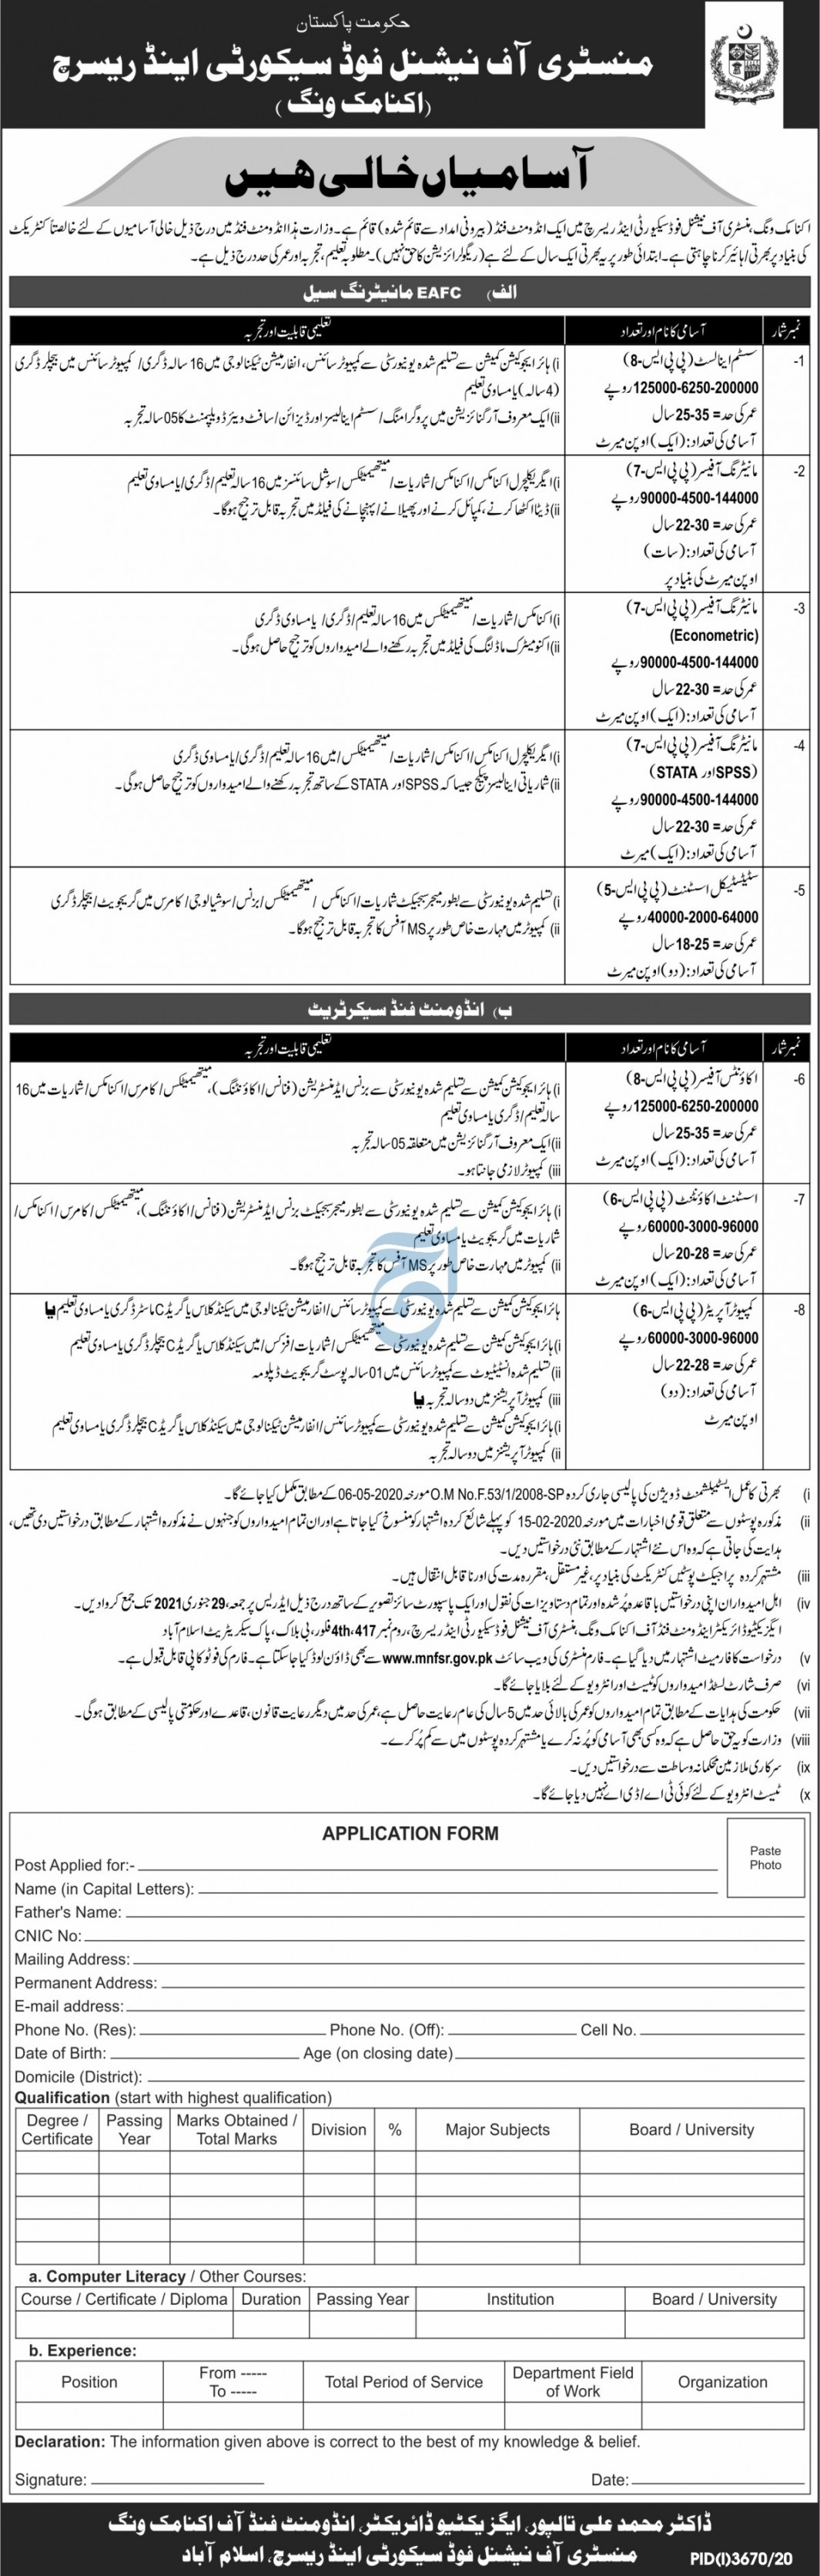 Ministry of National Food Security & Research jobs newspaper ad for System Analyst in Islamabad on 2021-01-13